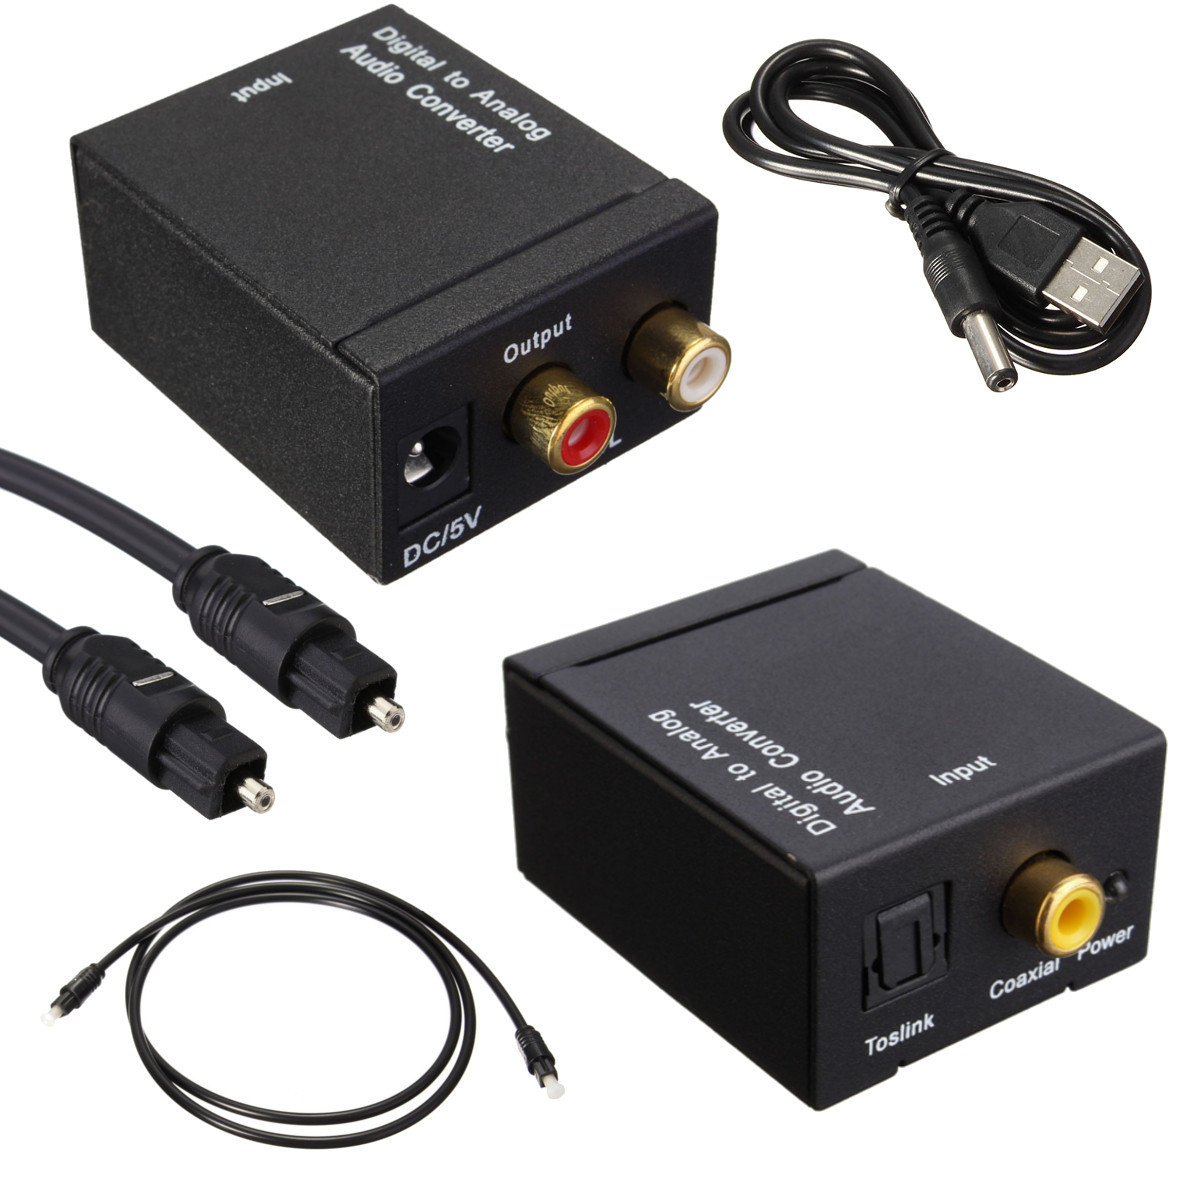 Digital Optical Coax Coaxial Toslink to Analog Audio